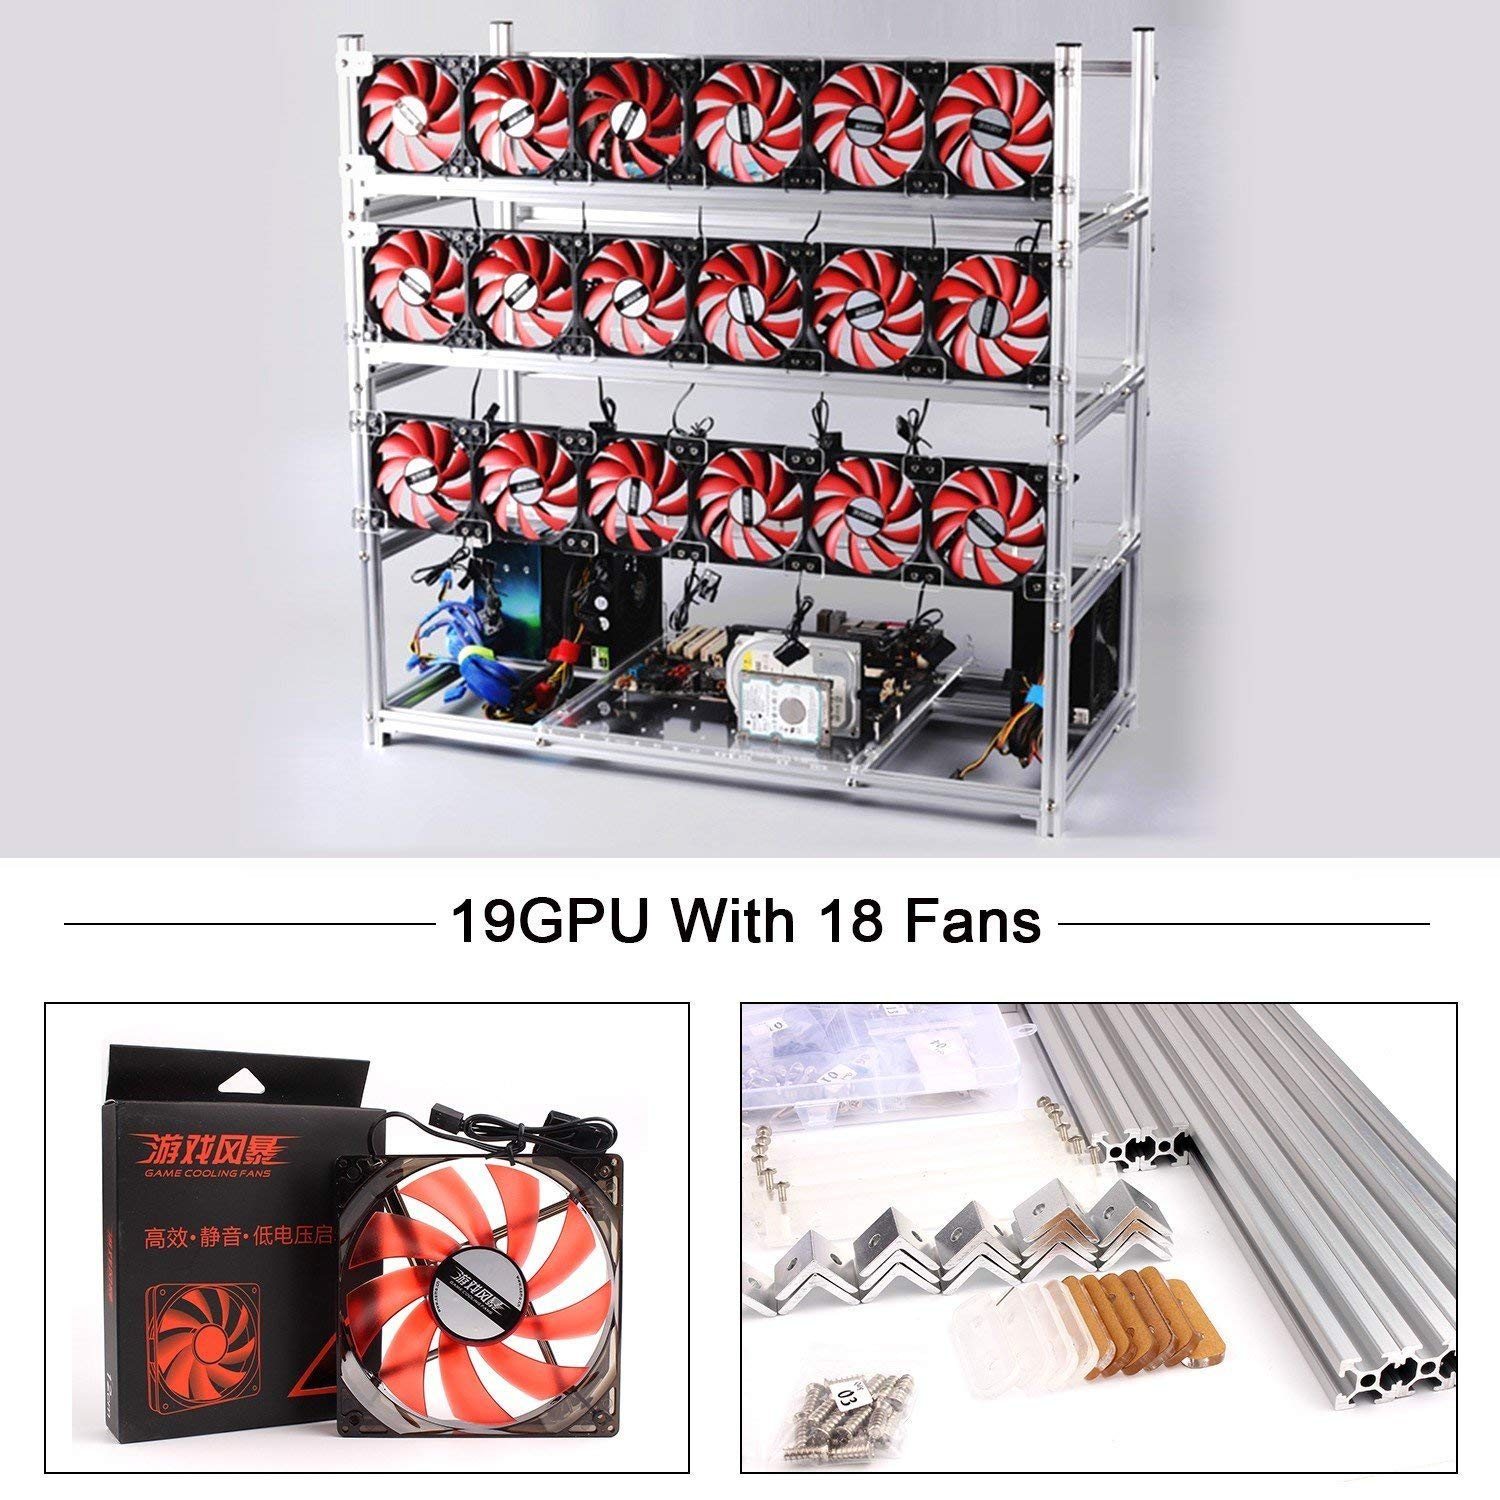 19 GPU Miner Case With 18 Red Fans, Aluminum Stackable Mining Rig Open Air Frame For Ethereum(ETH)/ETC/ZCash Ethereum,Bitcoin,Cryptocurrency and Altcoins to improve GPU performance and life